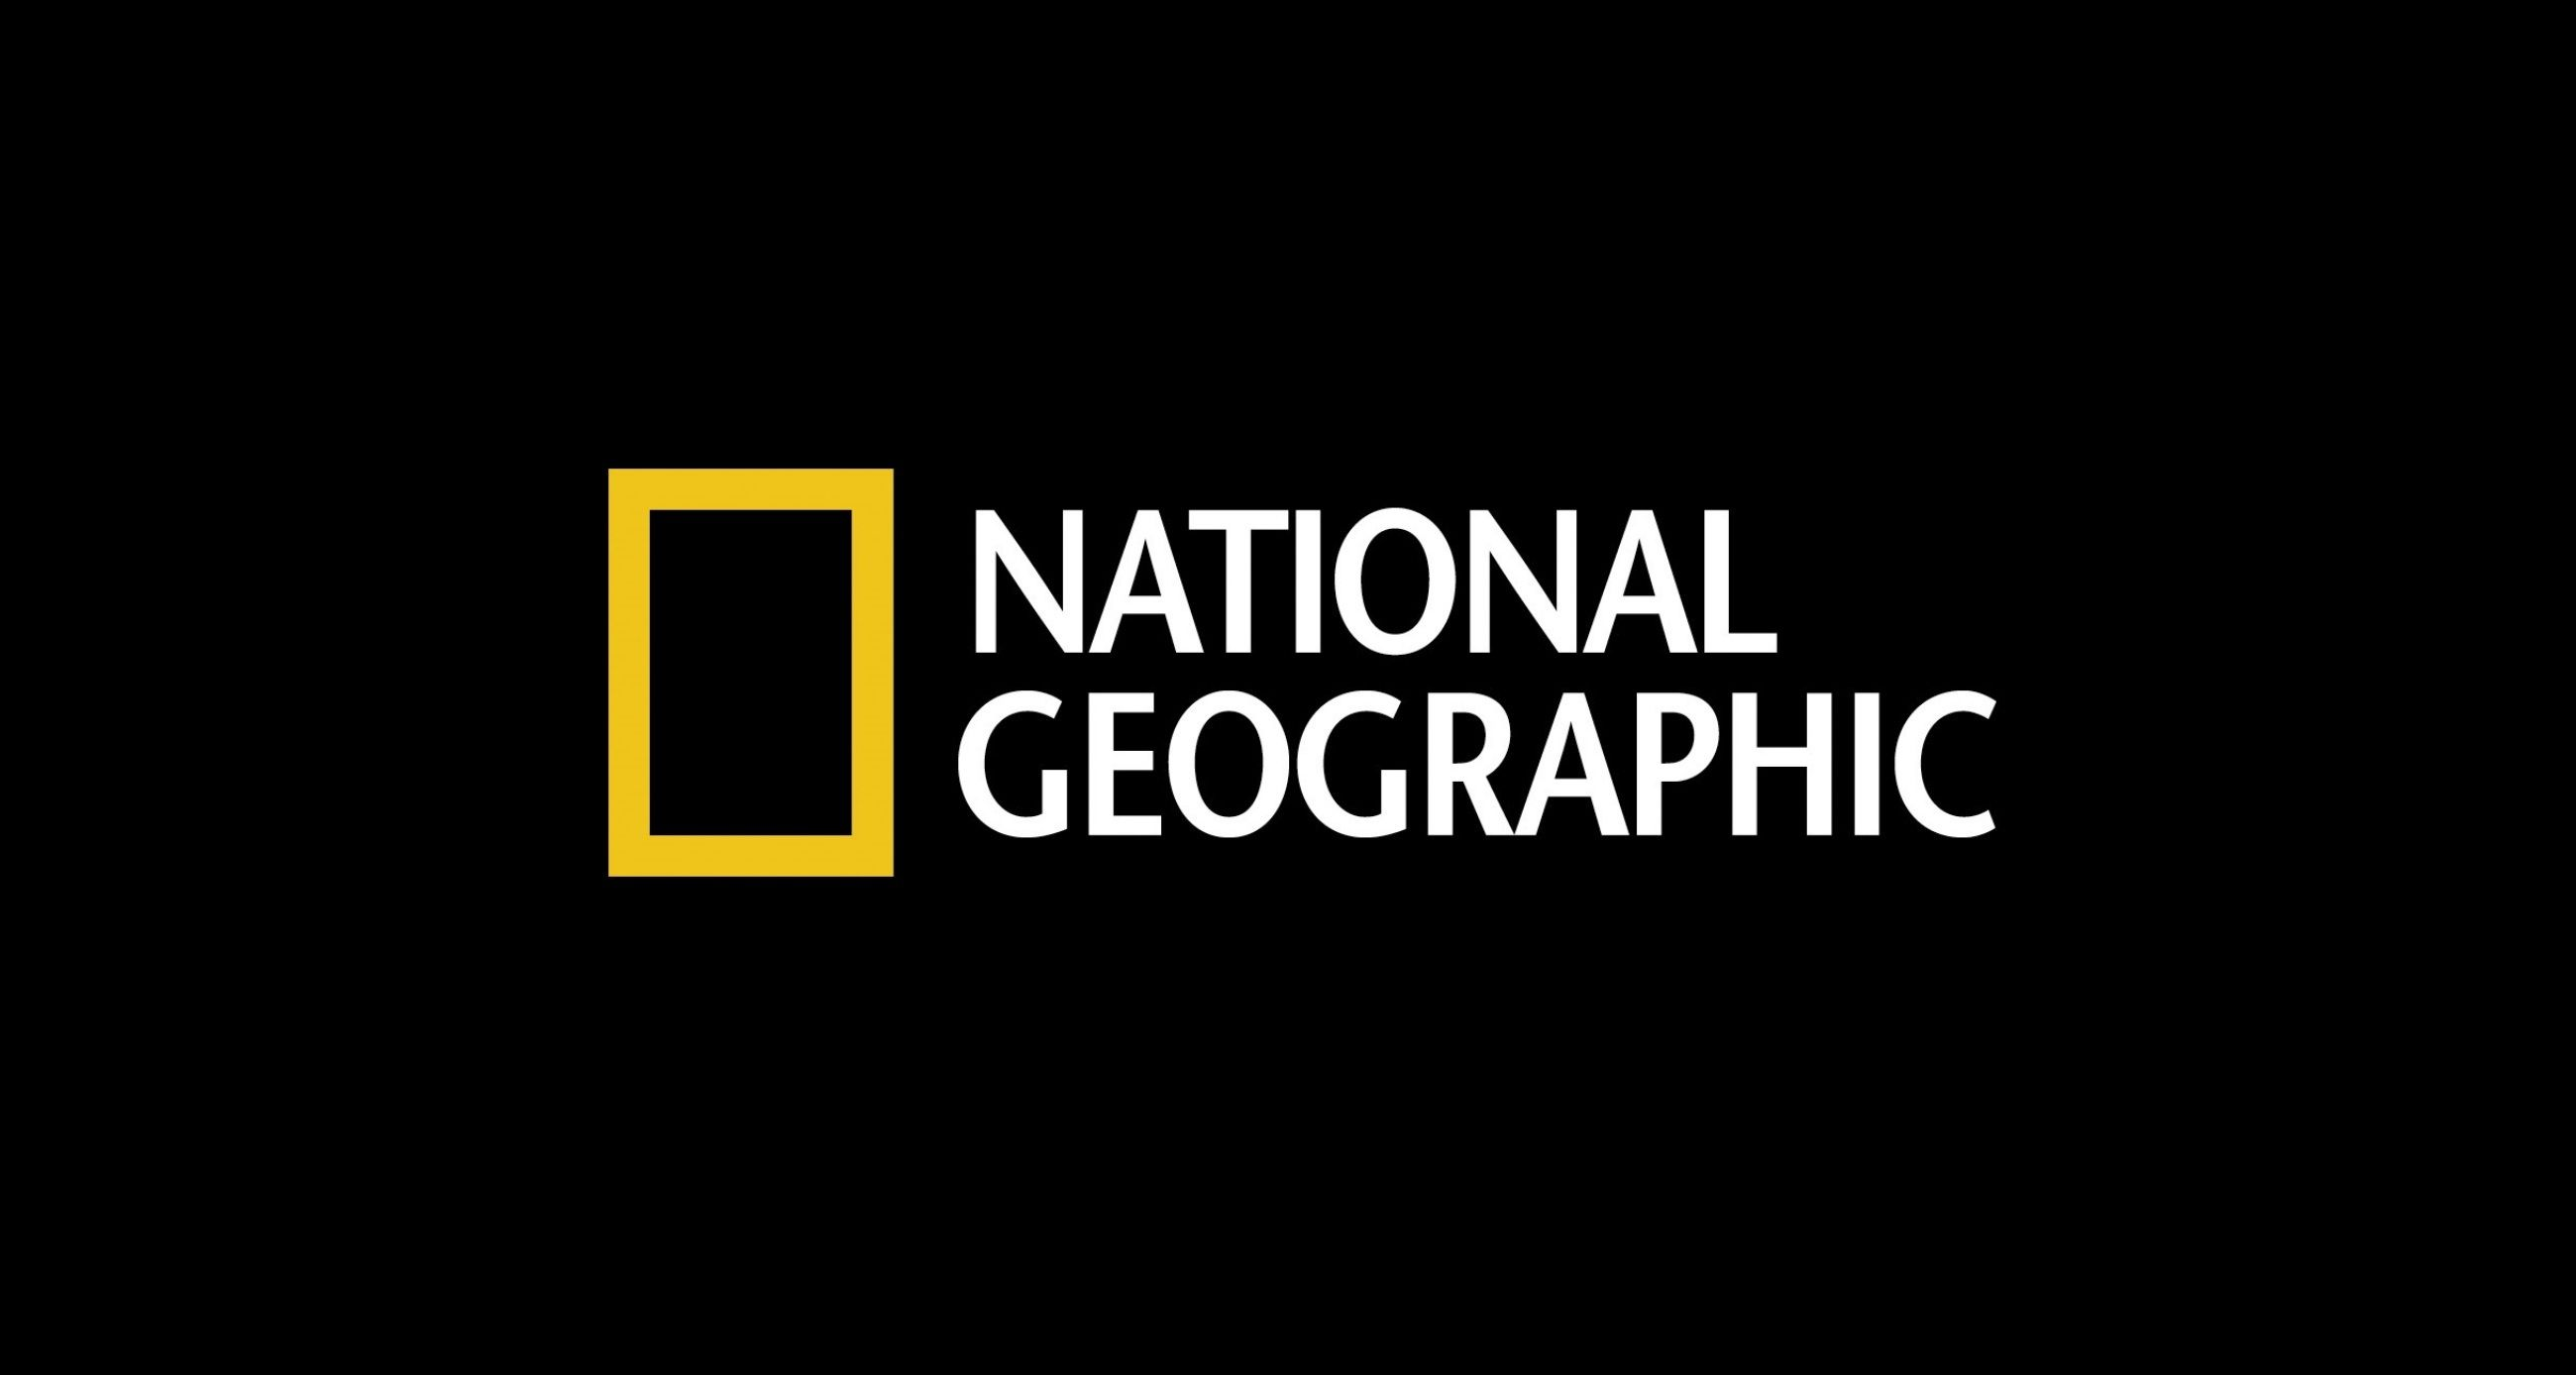 National Geographic Logo Hd Wallpaper National Geographic